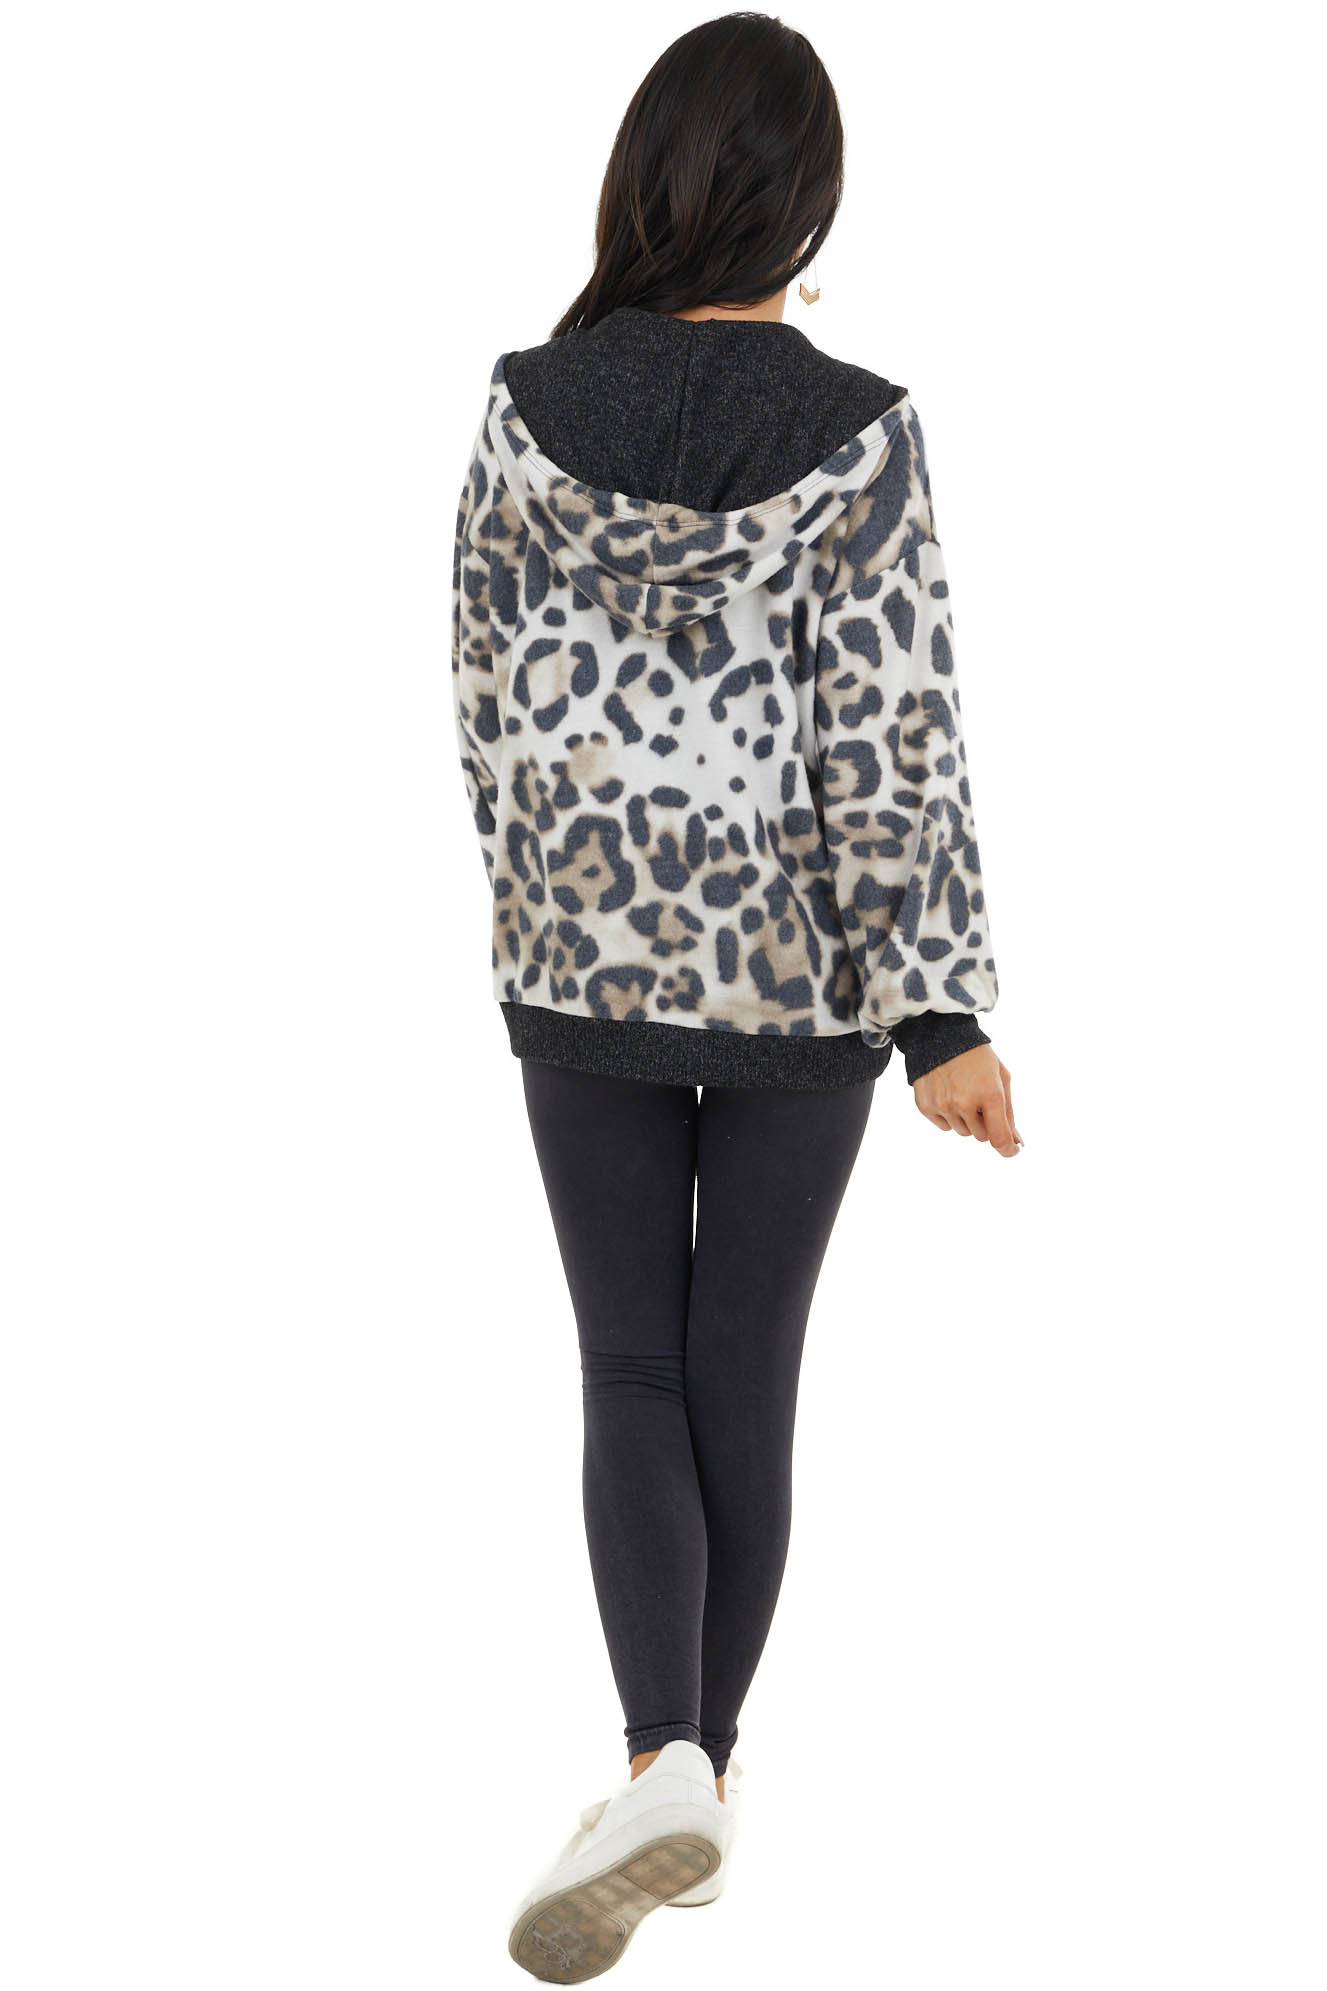 Charcoal and Oatmeal Leopard Draw String Zip Up Hoodie